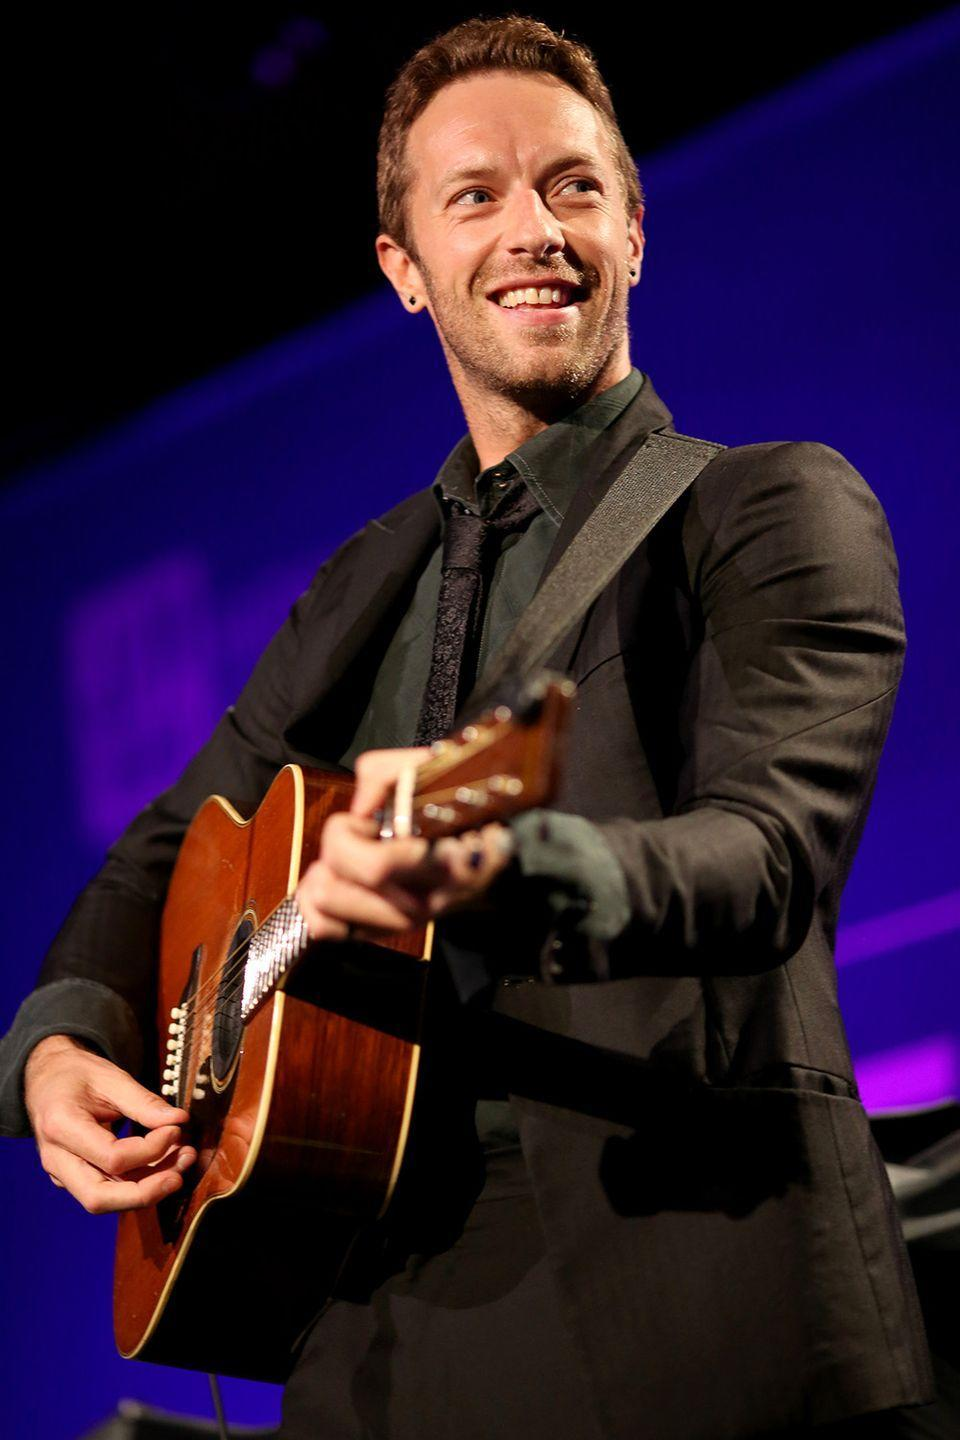 """<p>The lead singer of Coldplay admits the band indulged in a party phase early on in their career, but now Martin himself completely embraces the teetotal life. </p><p>H/T: <a href=""""https://www.theguardian.com/music/2005/may/28/popandrock.coldplay"""" rel=""""nofollow noopener"""" target=""""_blank"""" data-ylk=""""slk:The Guardian"""" class=""""link rapid-noclick-resp"""">The Guardian</a></p>"""